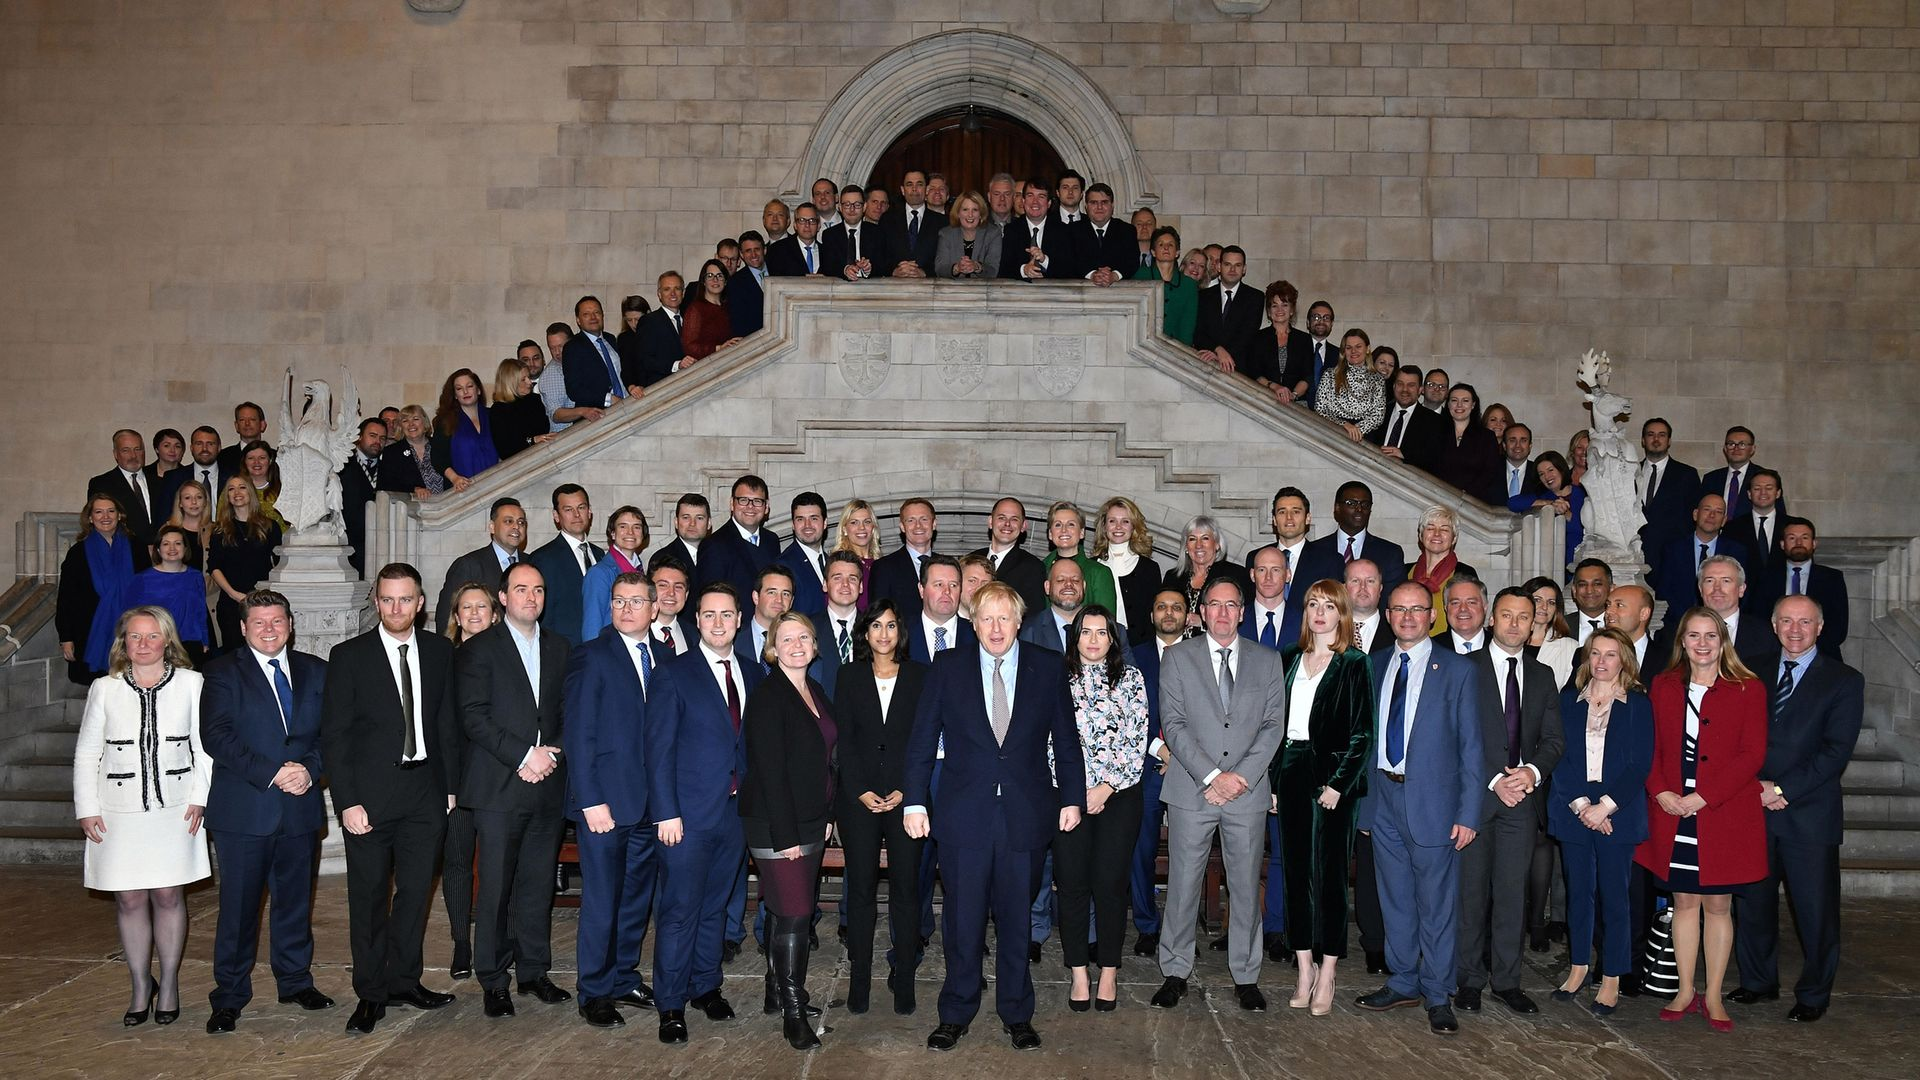 Boris Johnson alongside newly elected Conservative MPs at the Houses of Parliament in Westminster - Credit: PA